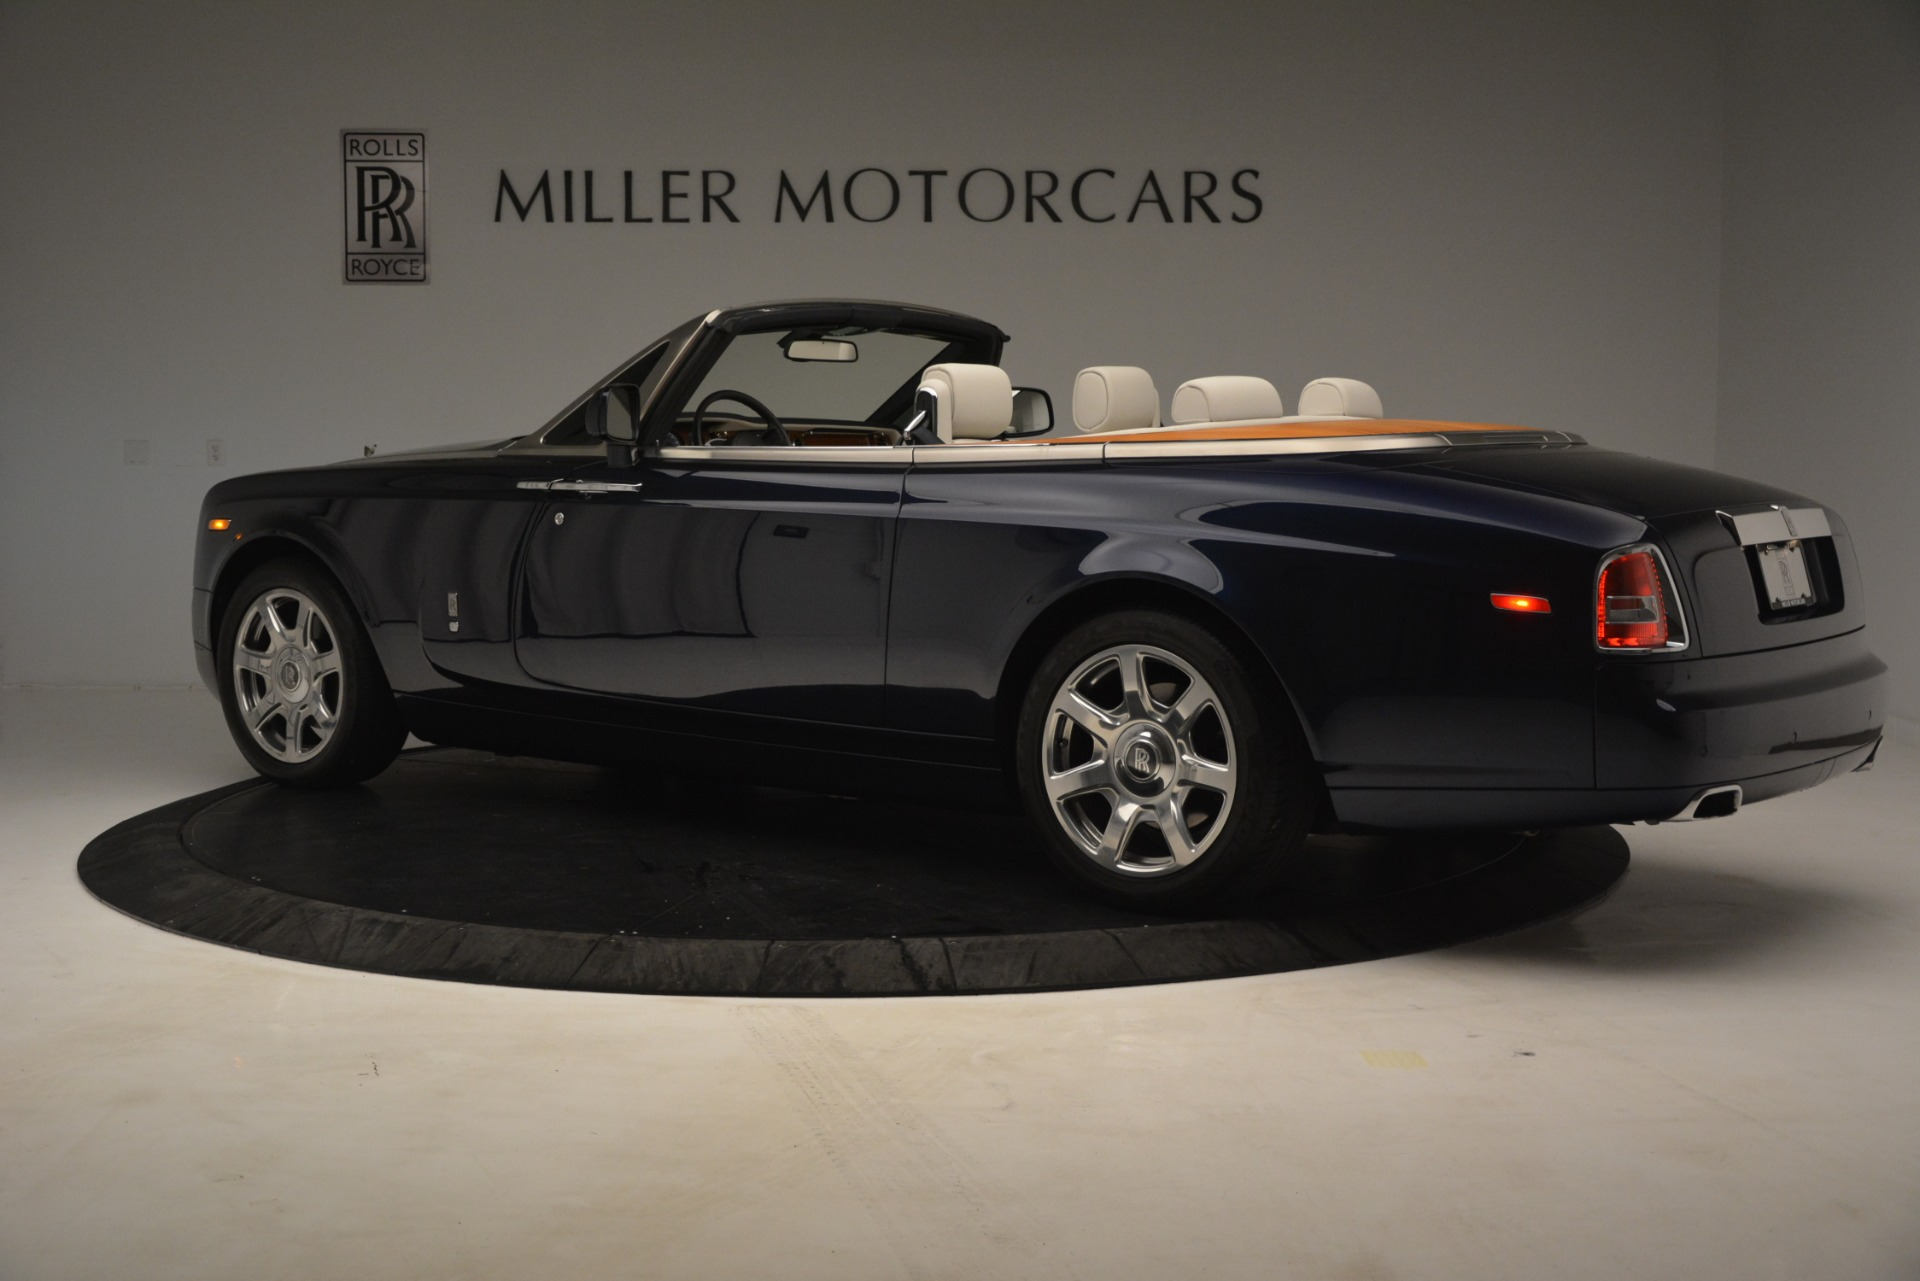 Used 2013 Rolls-Royce Phantom Drophead Coupe  For Sale In Greenwich, CT 2999_p6